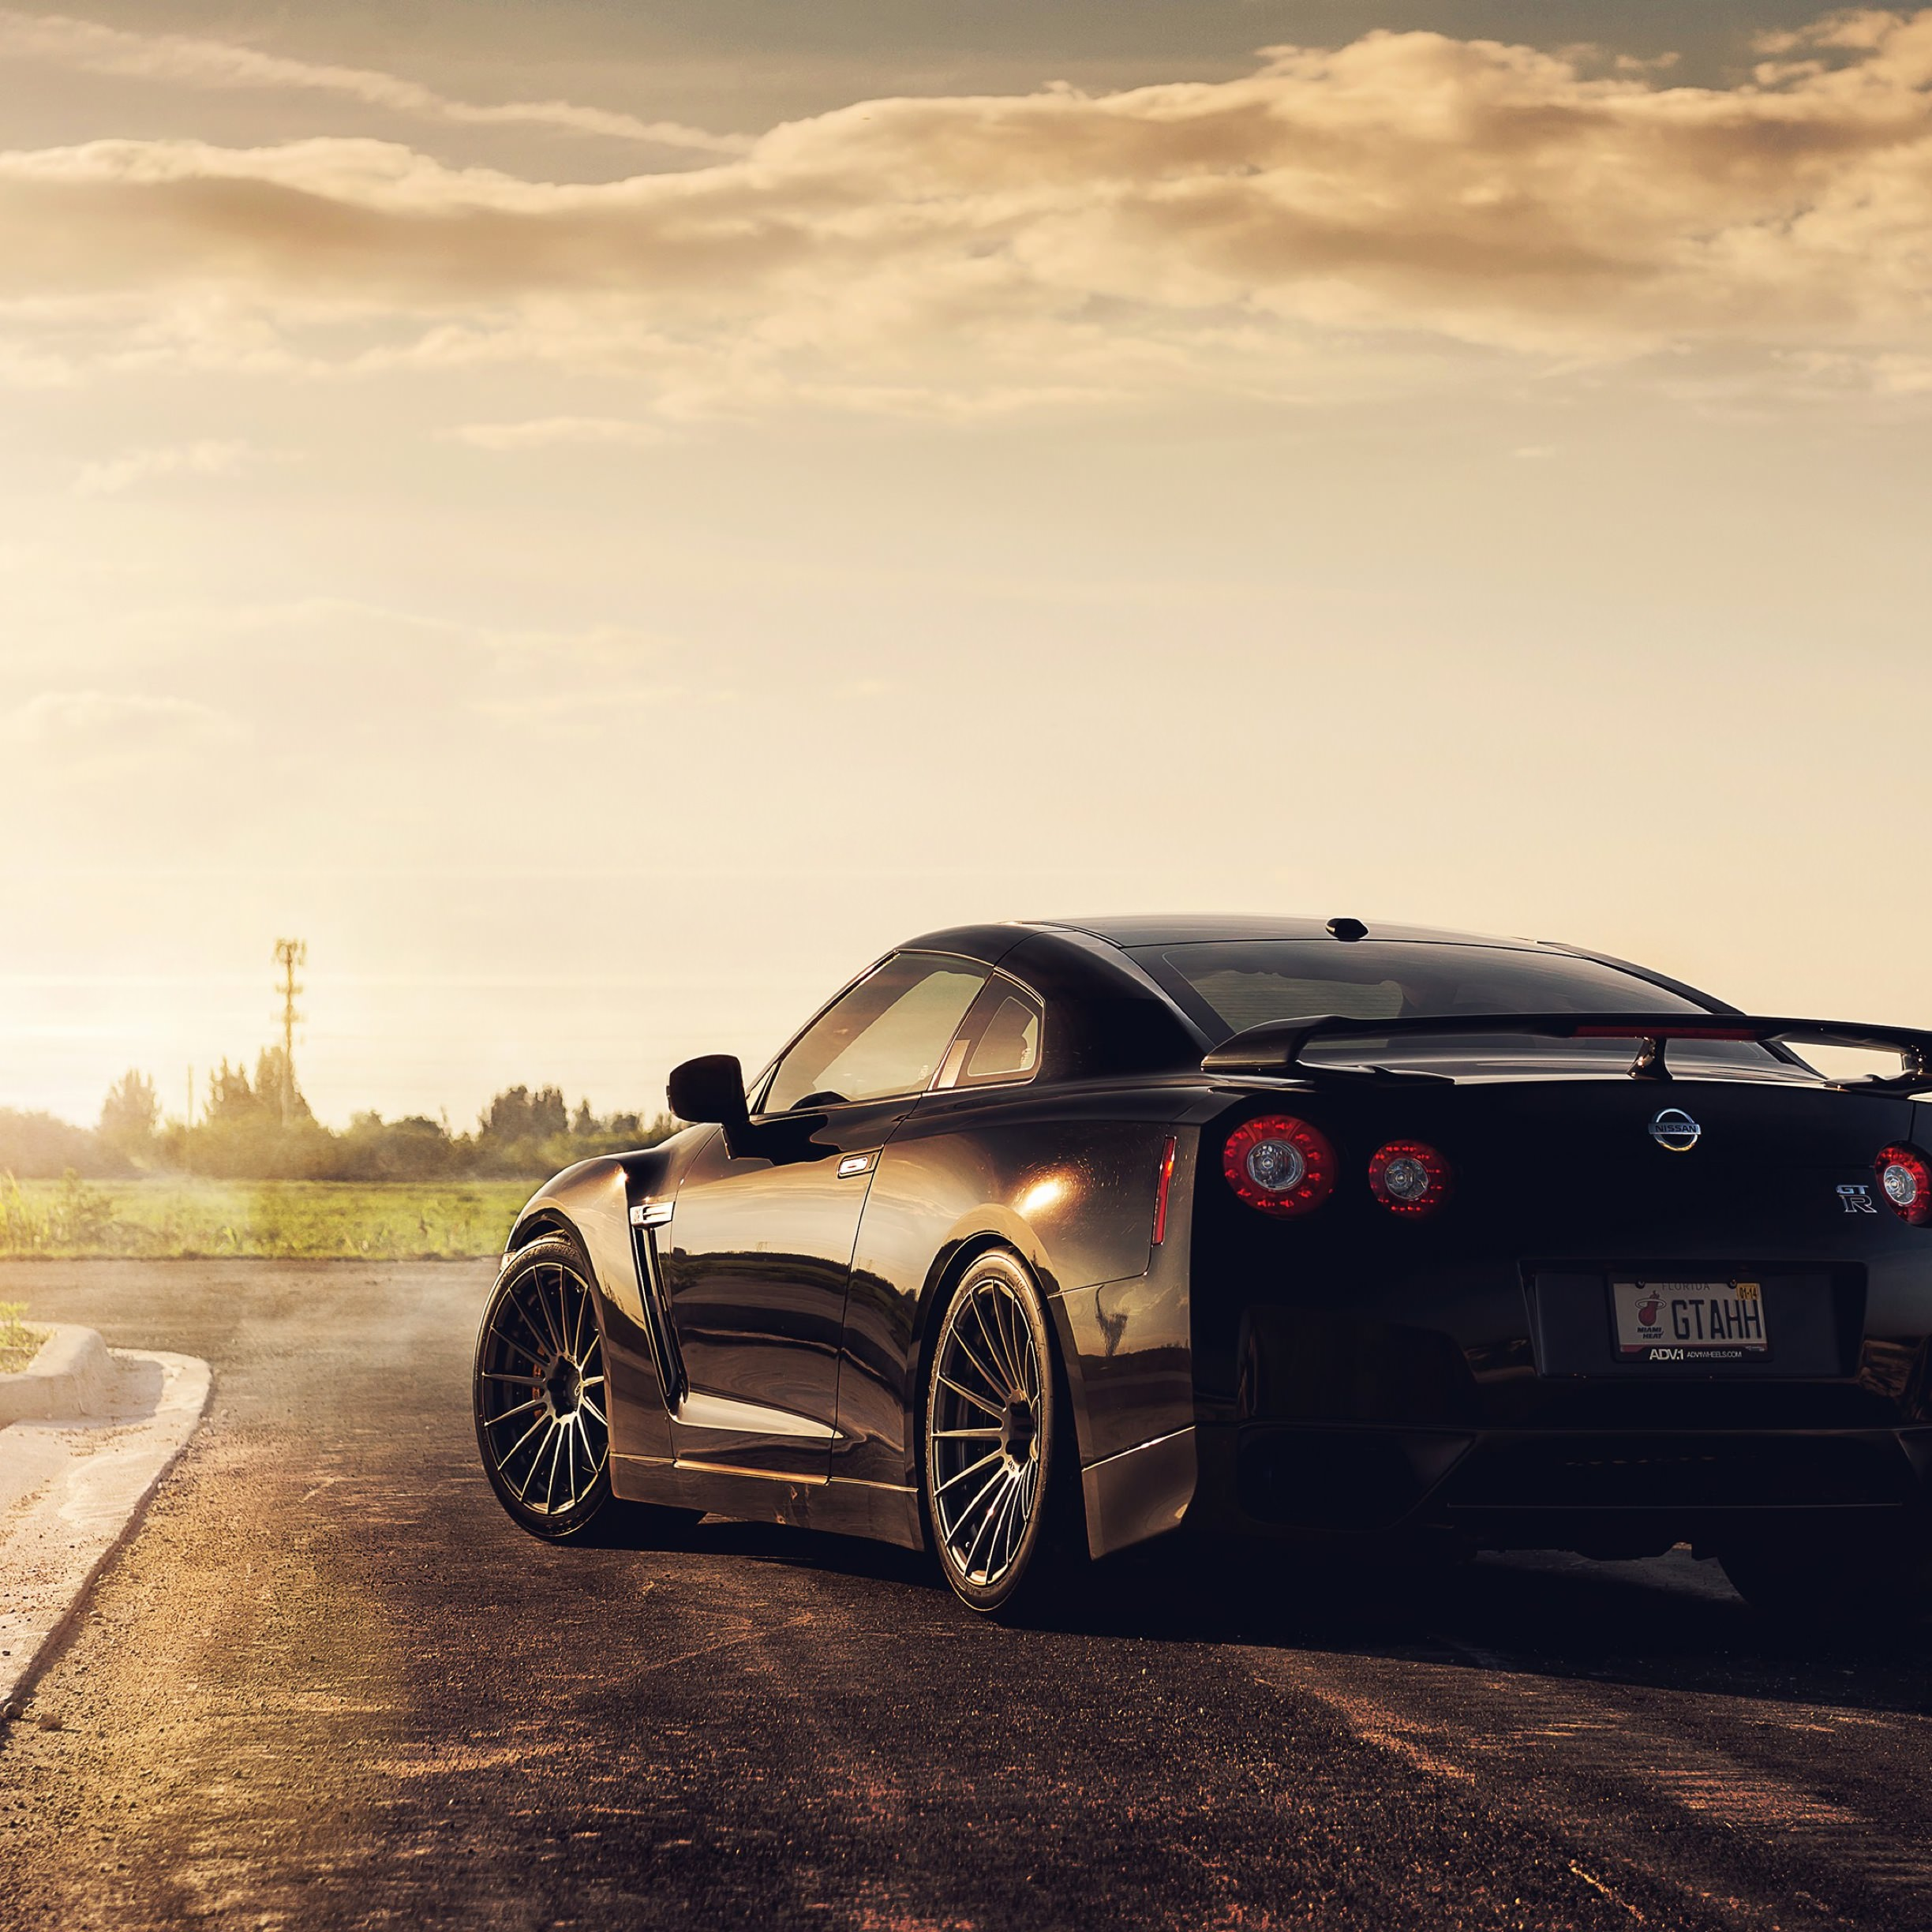 Nissan Gtr Ipad Wallpaper: 乗り物車黒クール